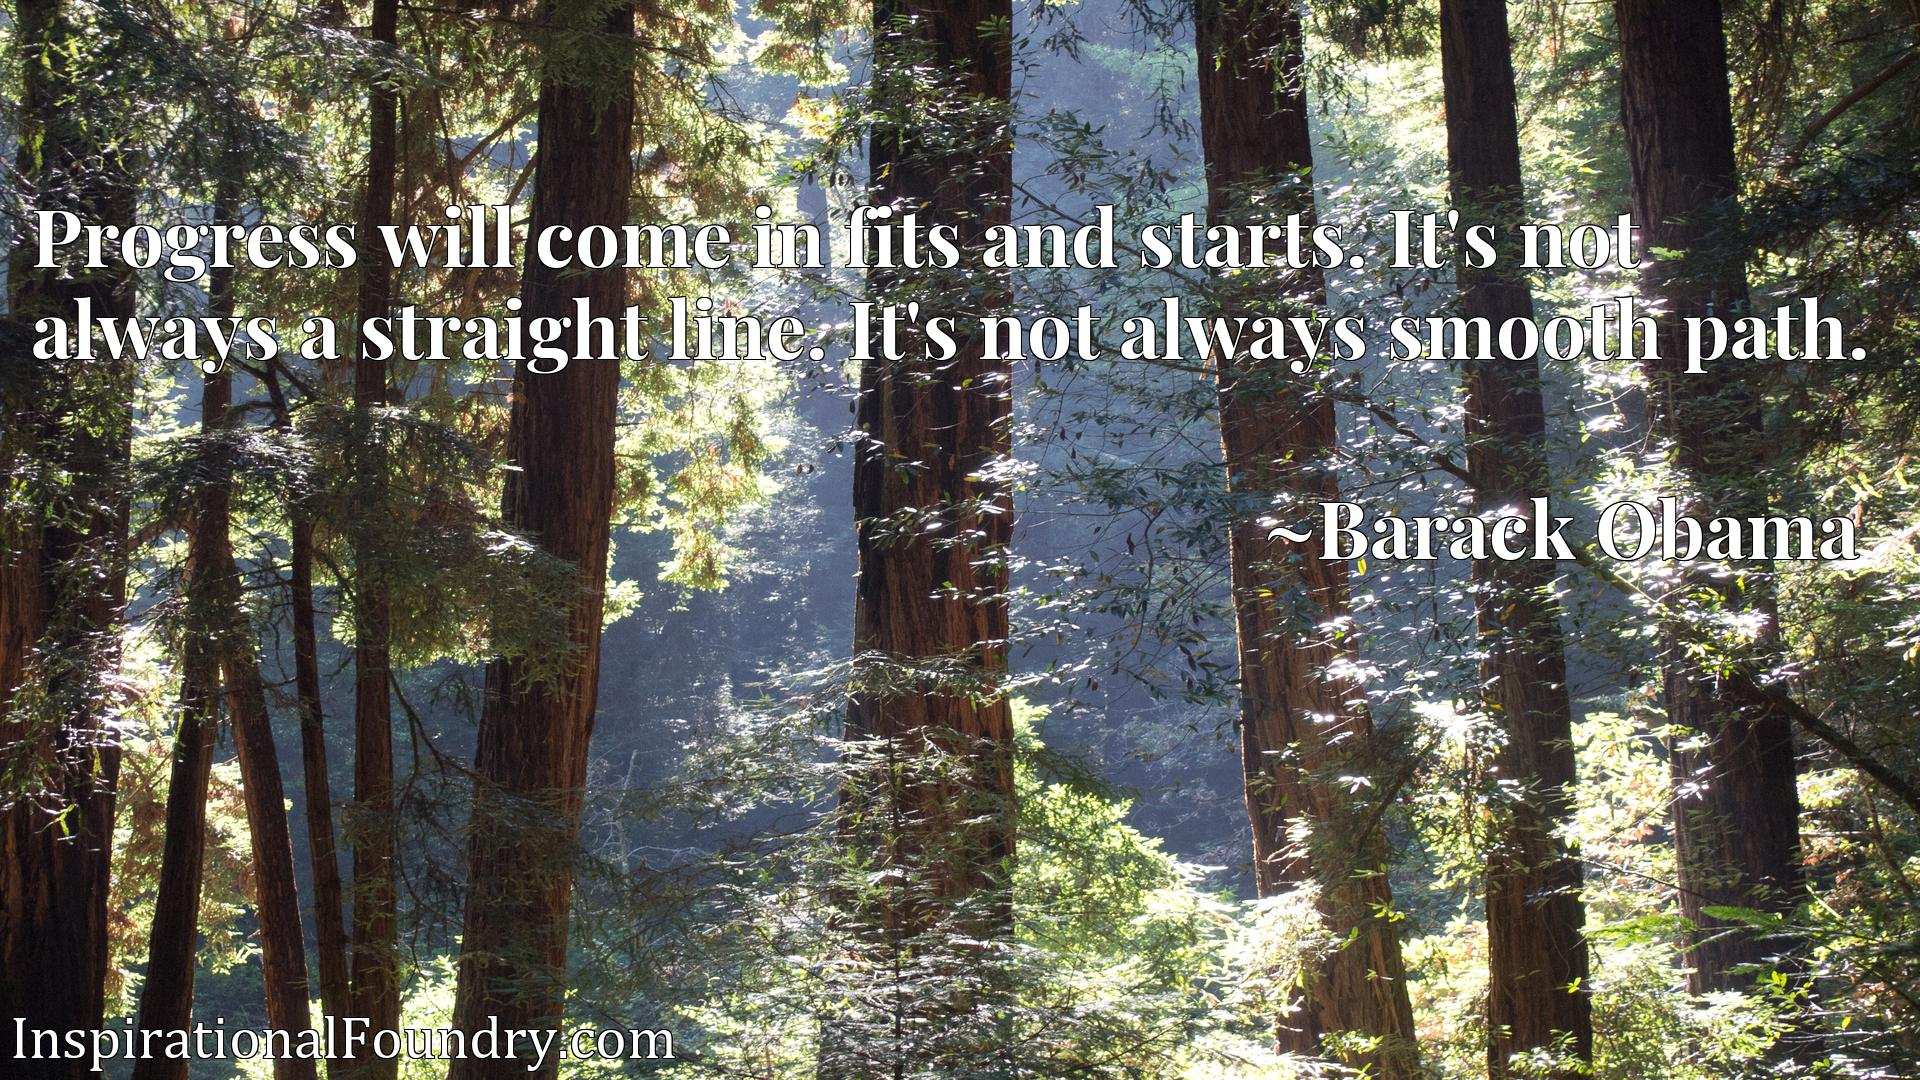 Quote Picture :Progress will come in fits and starts. It's not always a straight line. It's not always smooth path.